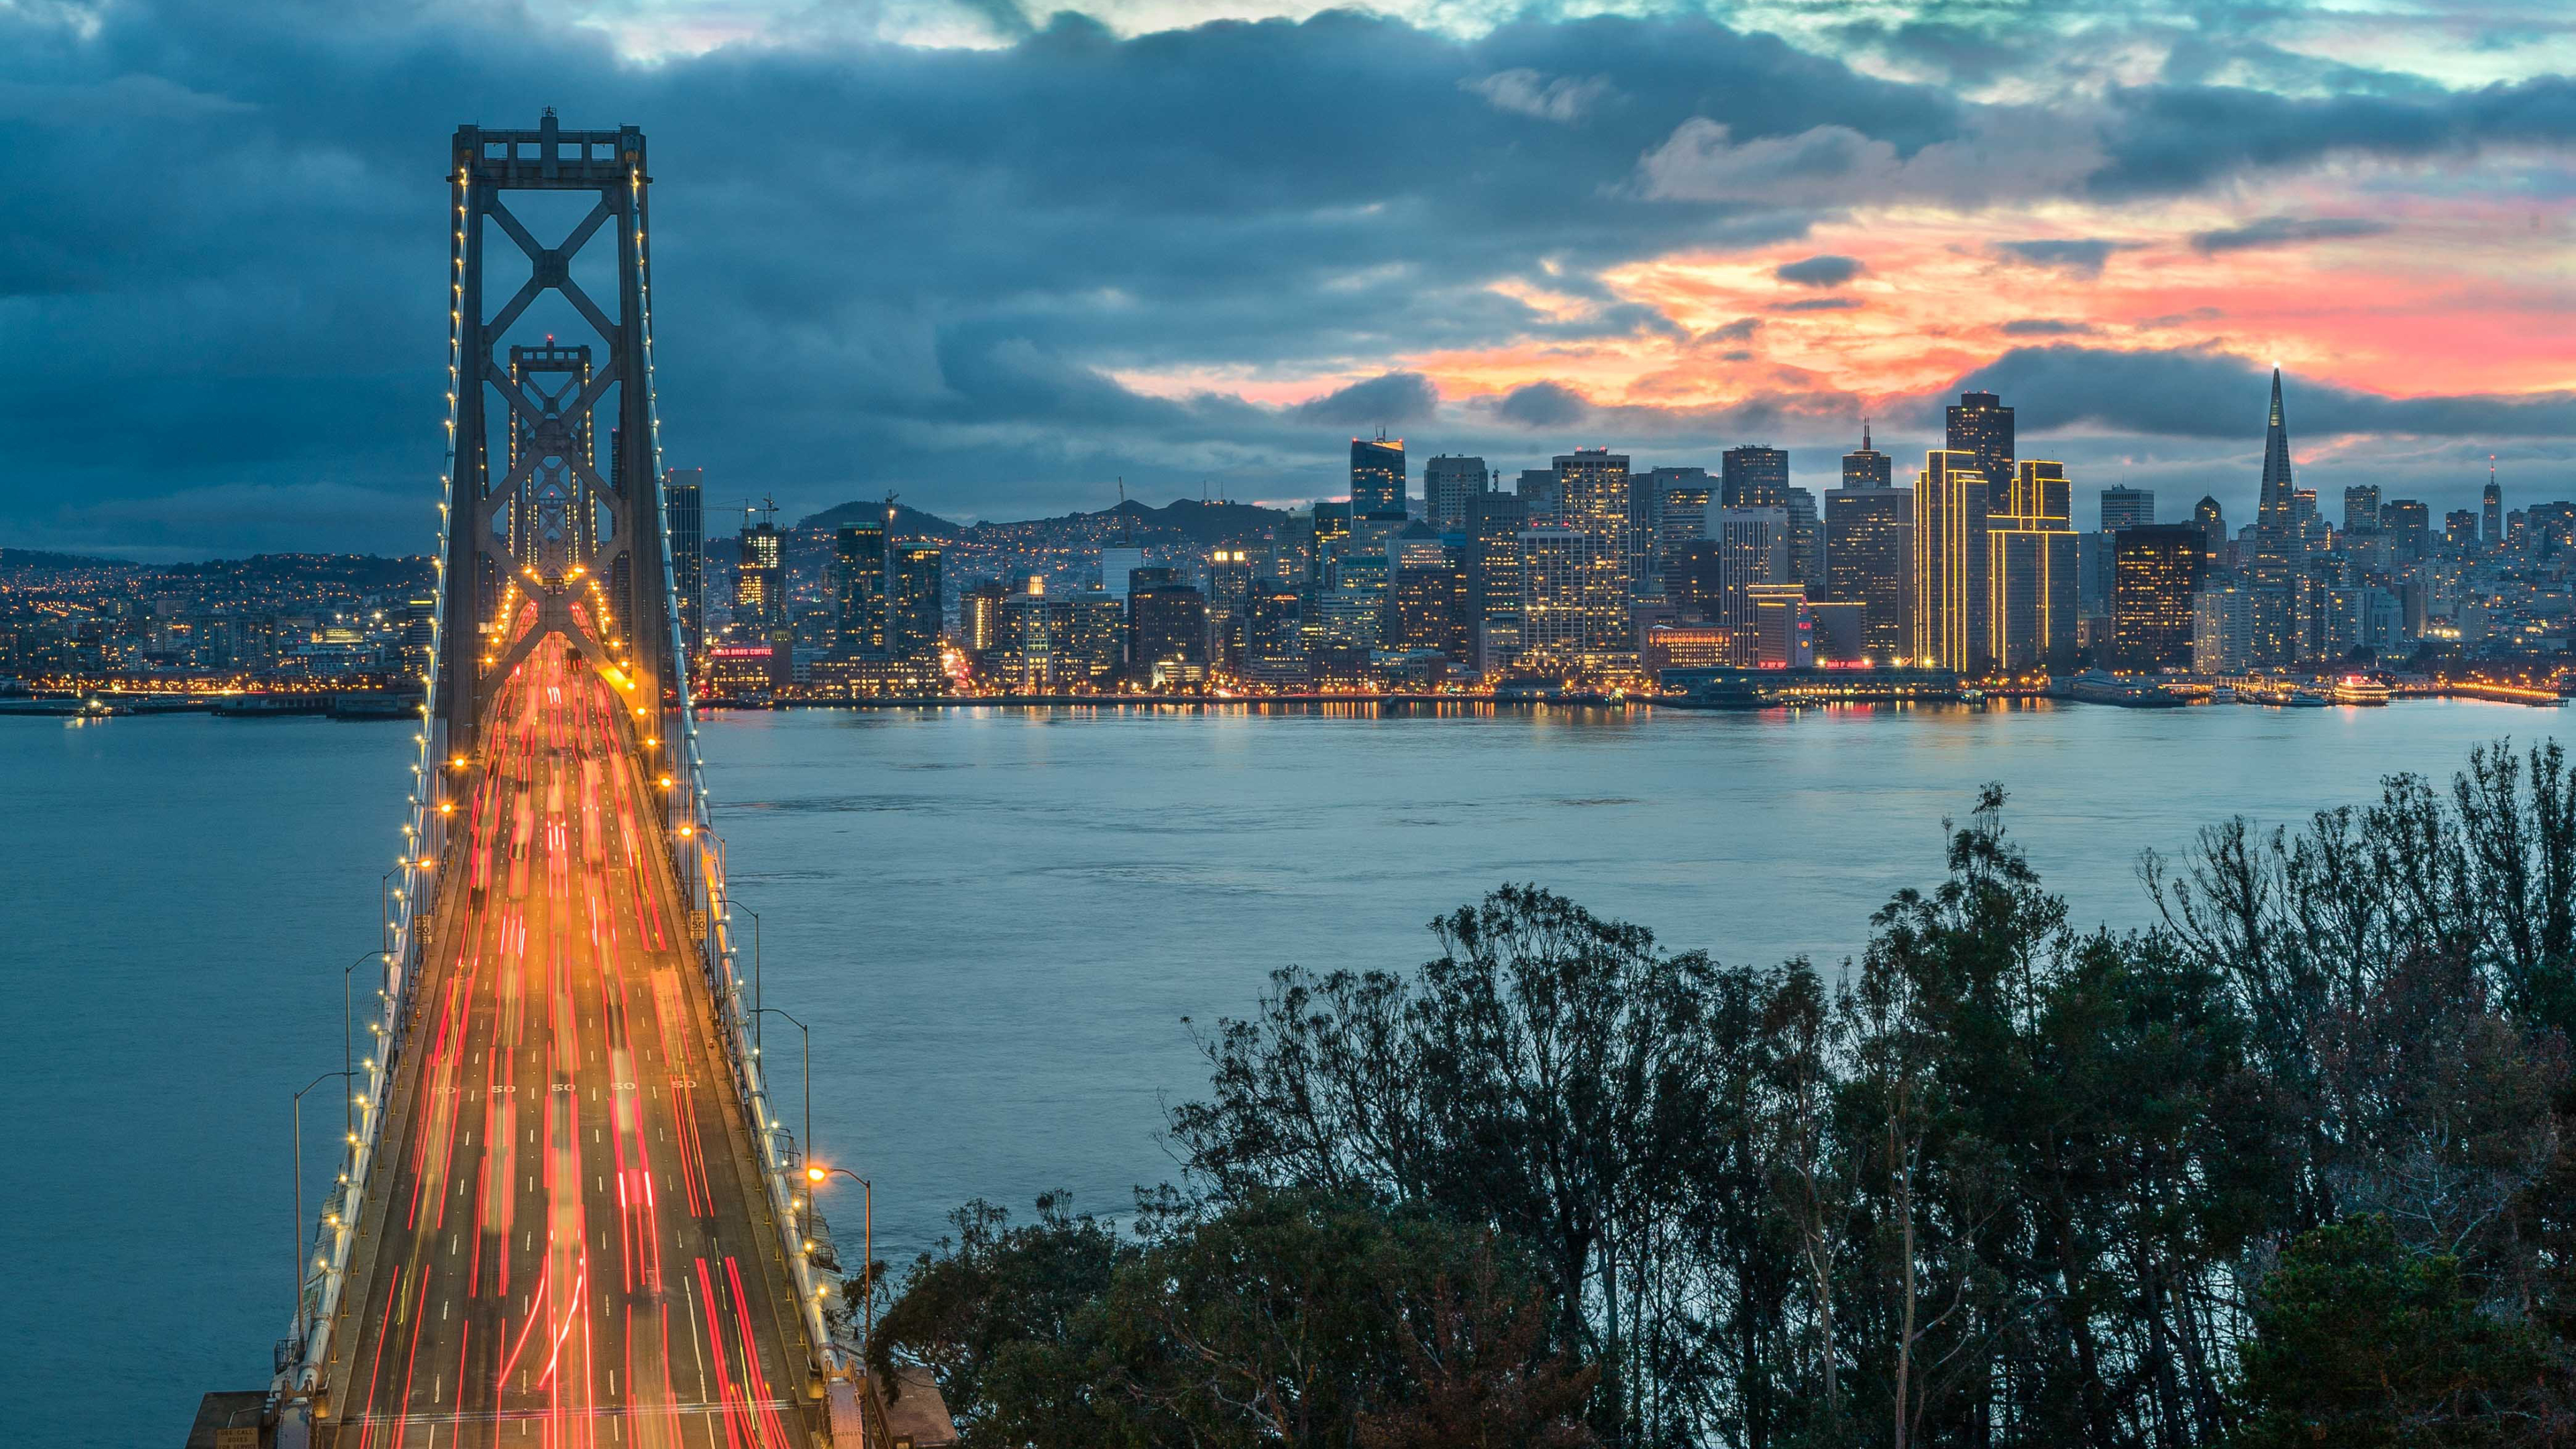 Bay Area , HD Wallpaper & Backgrounds